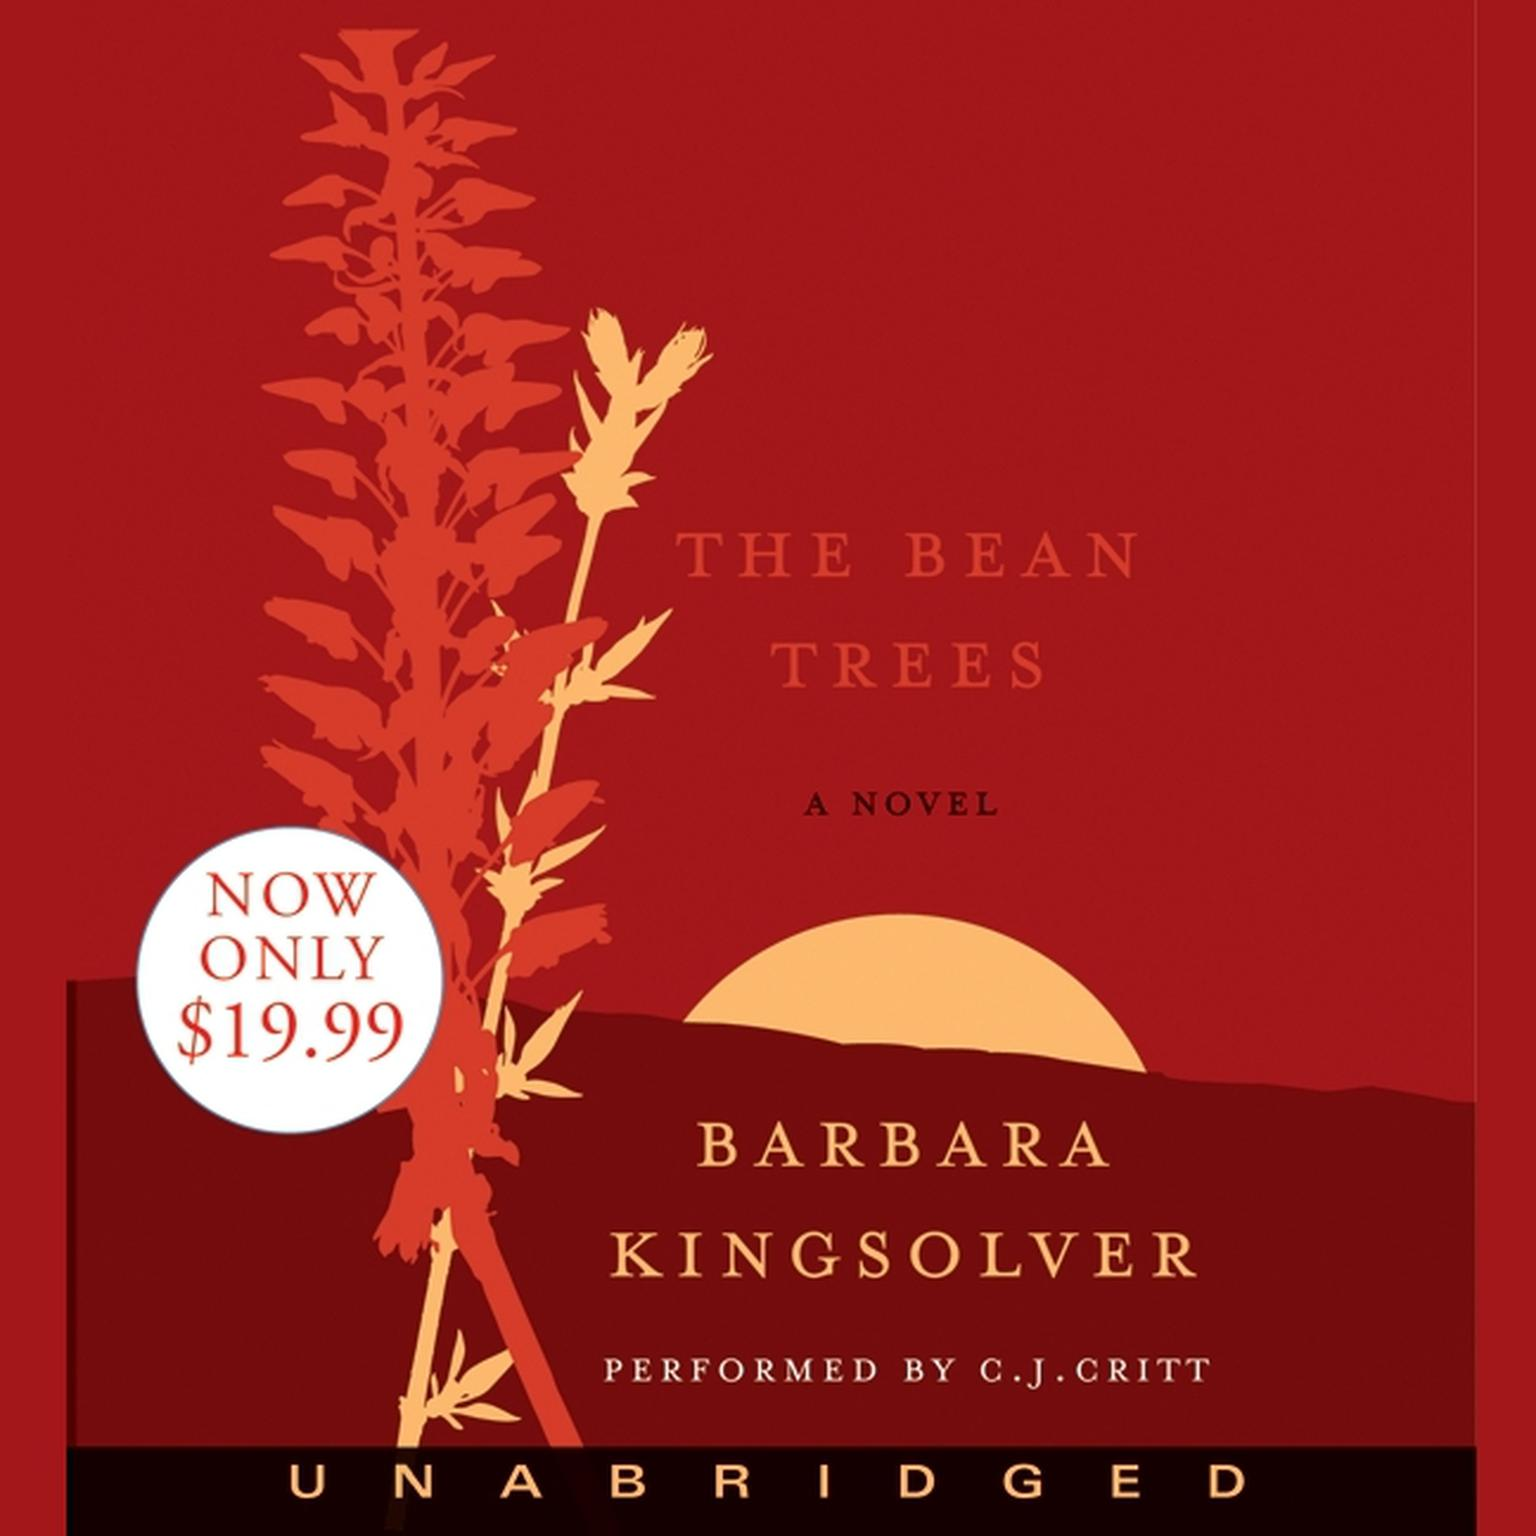 the bean tree essay Free monkeynotes study guide summary for the bean trees by barbara kingsolver-free booknotes summary online plot analysis synopsis study guide essay book report.